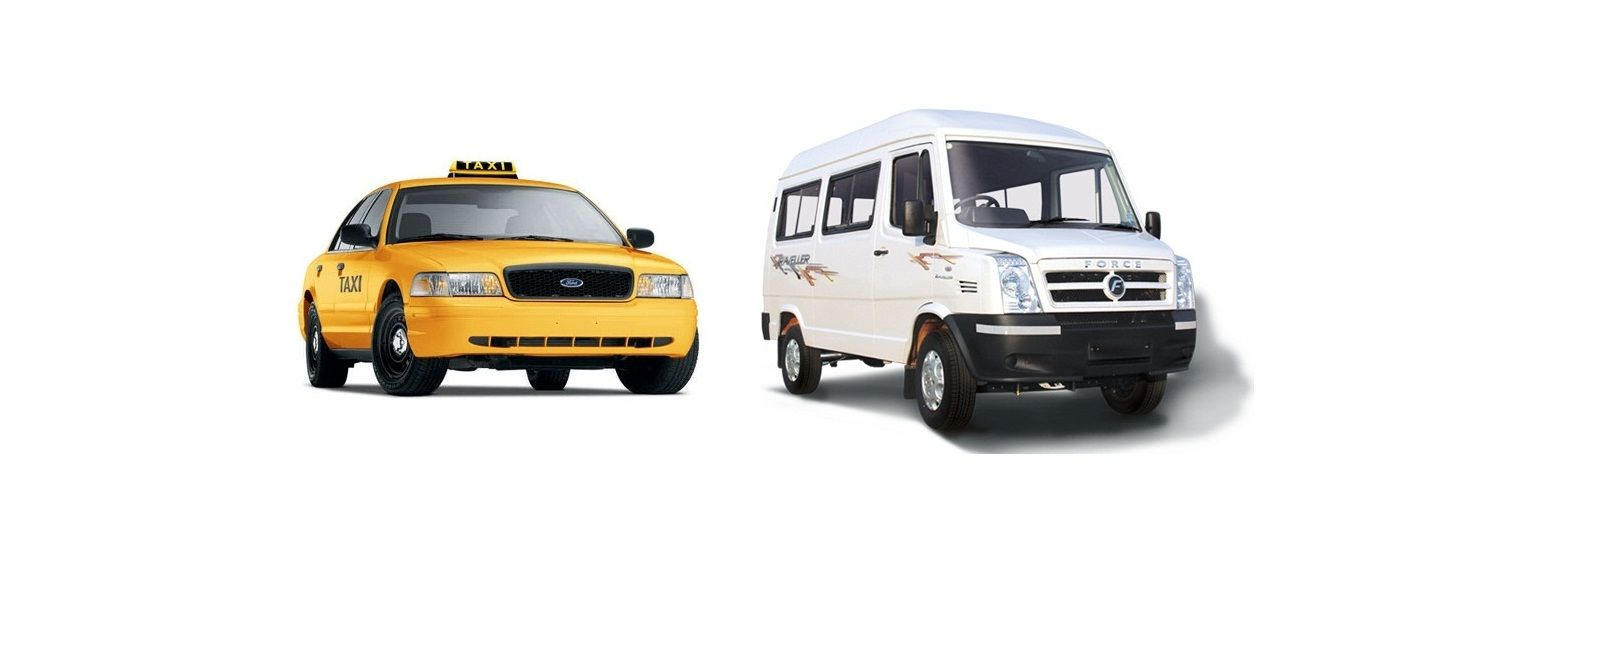 Book a Taxi, Cab, Udaipur Airport, Best Tour Package Booking, Full Day Local Sightseeing, Tour Guide | Neeraj Tour & Travels, Udaipur